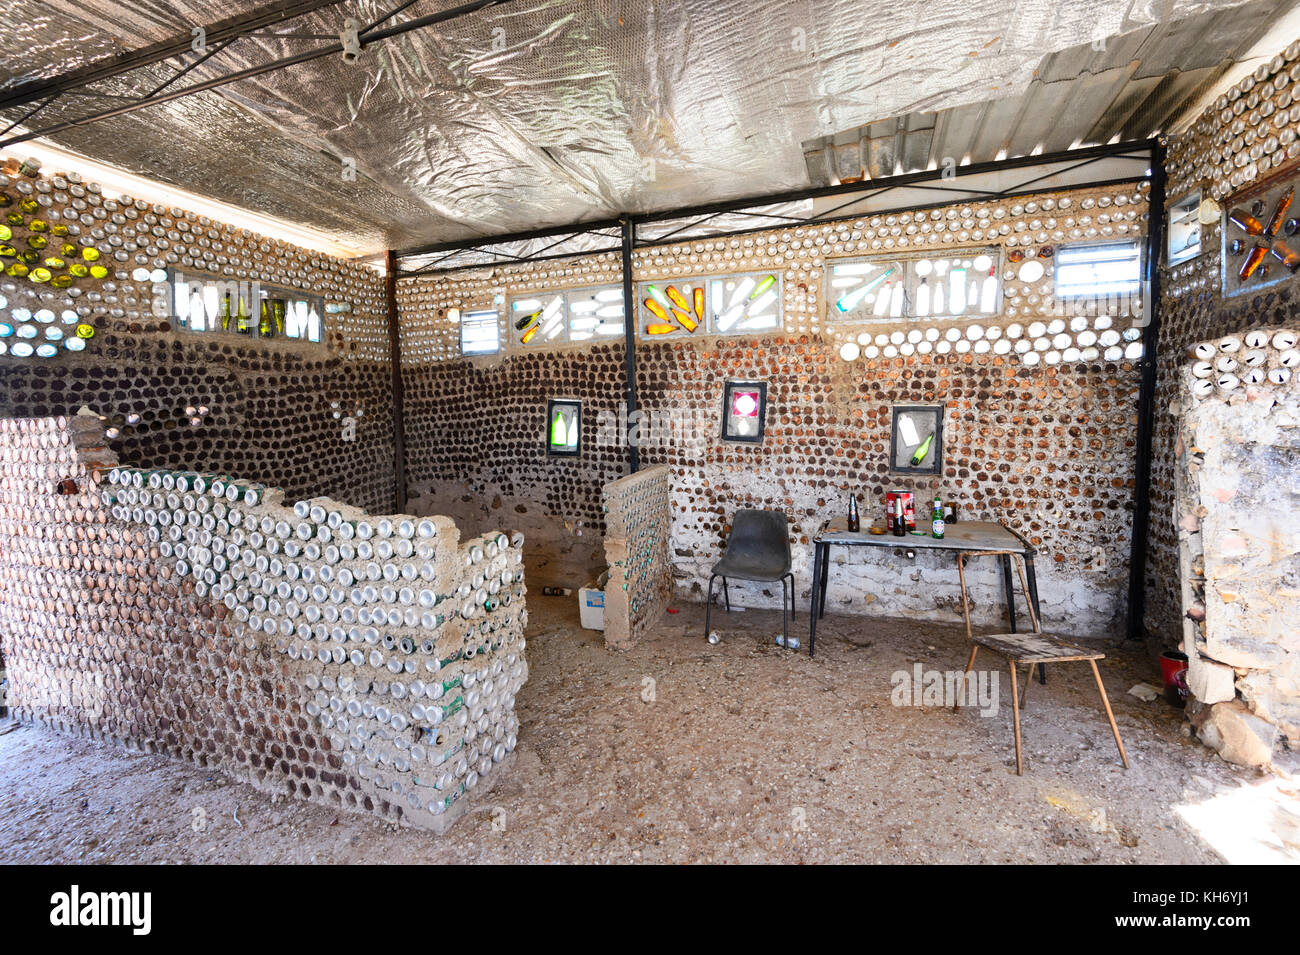 Astounding Interior Of The Beer Can House Made Of Old Beer Cans And Interior Design Ideas Philsoteloinfo